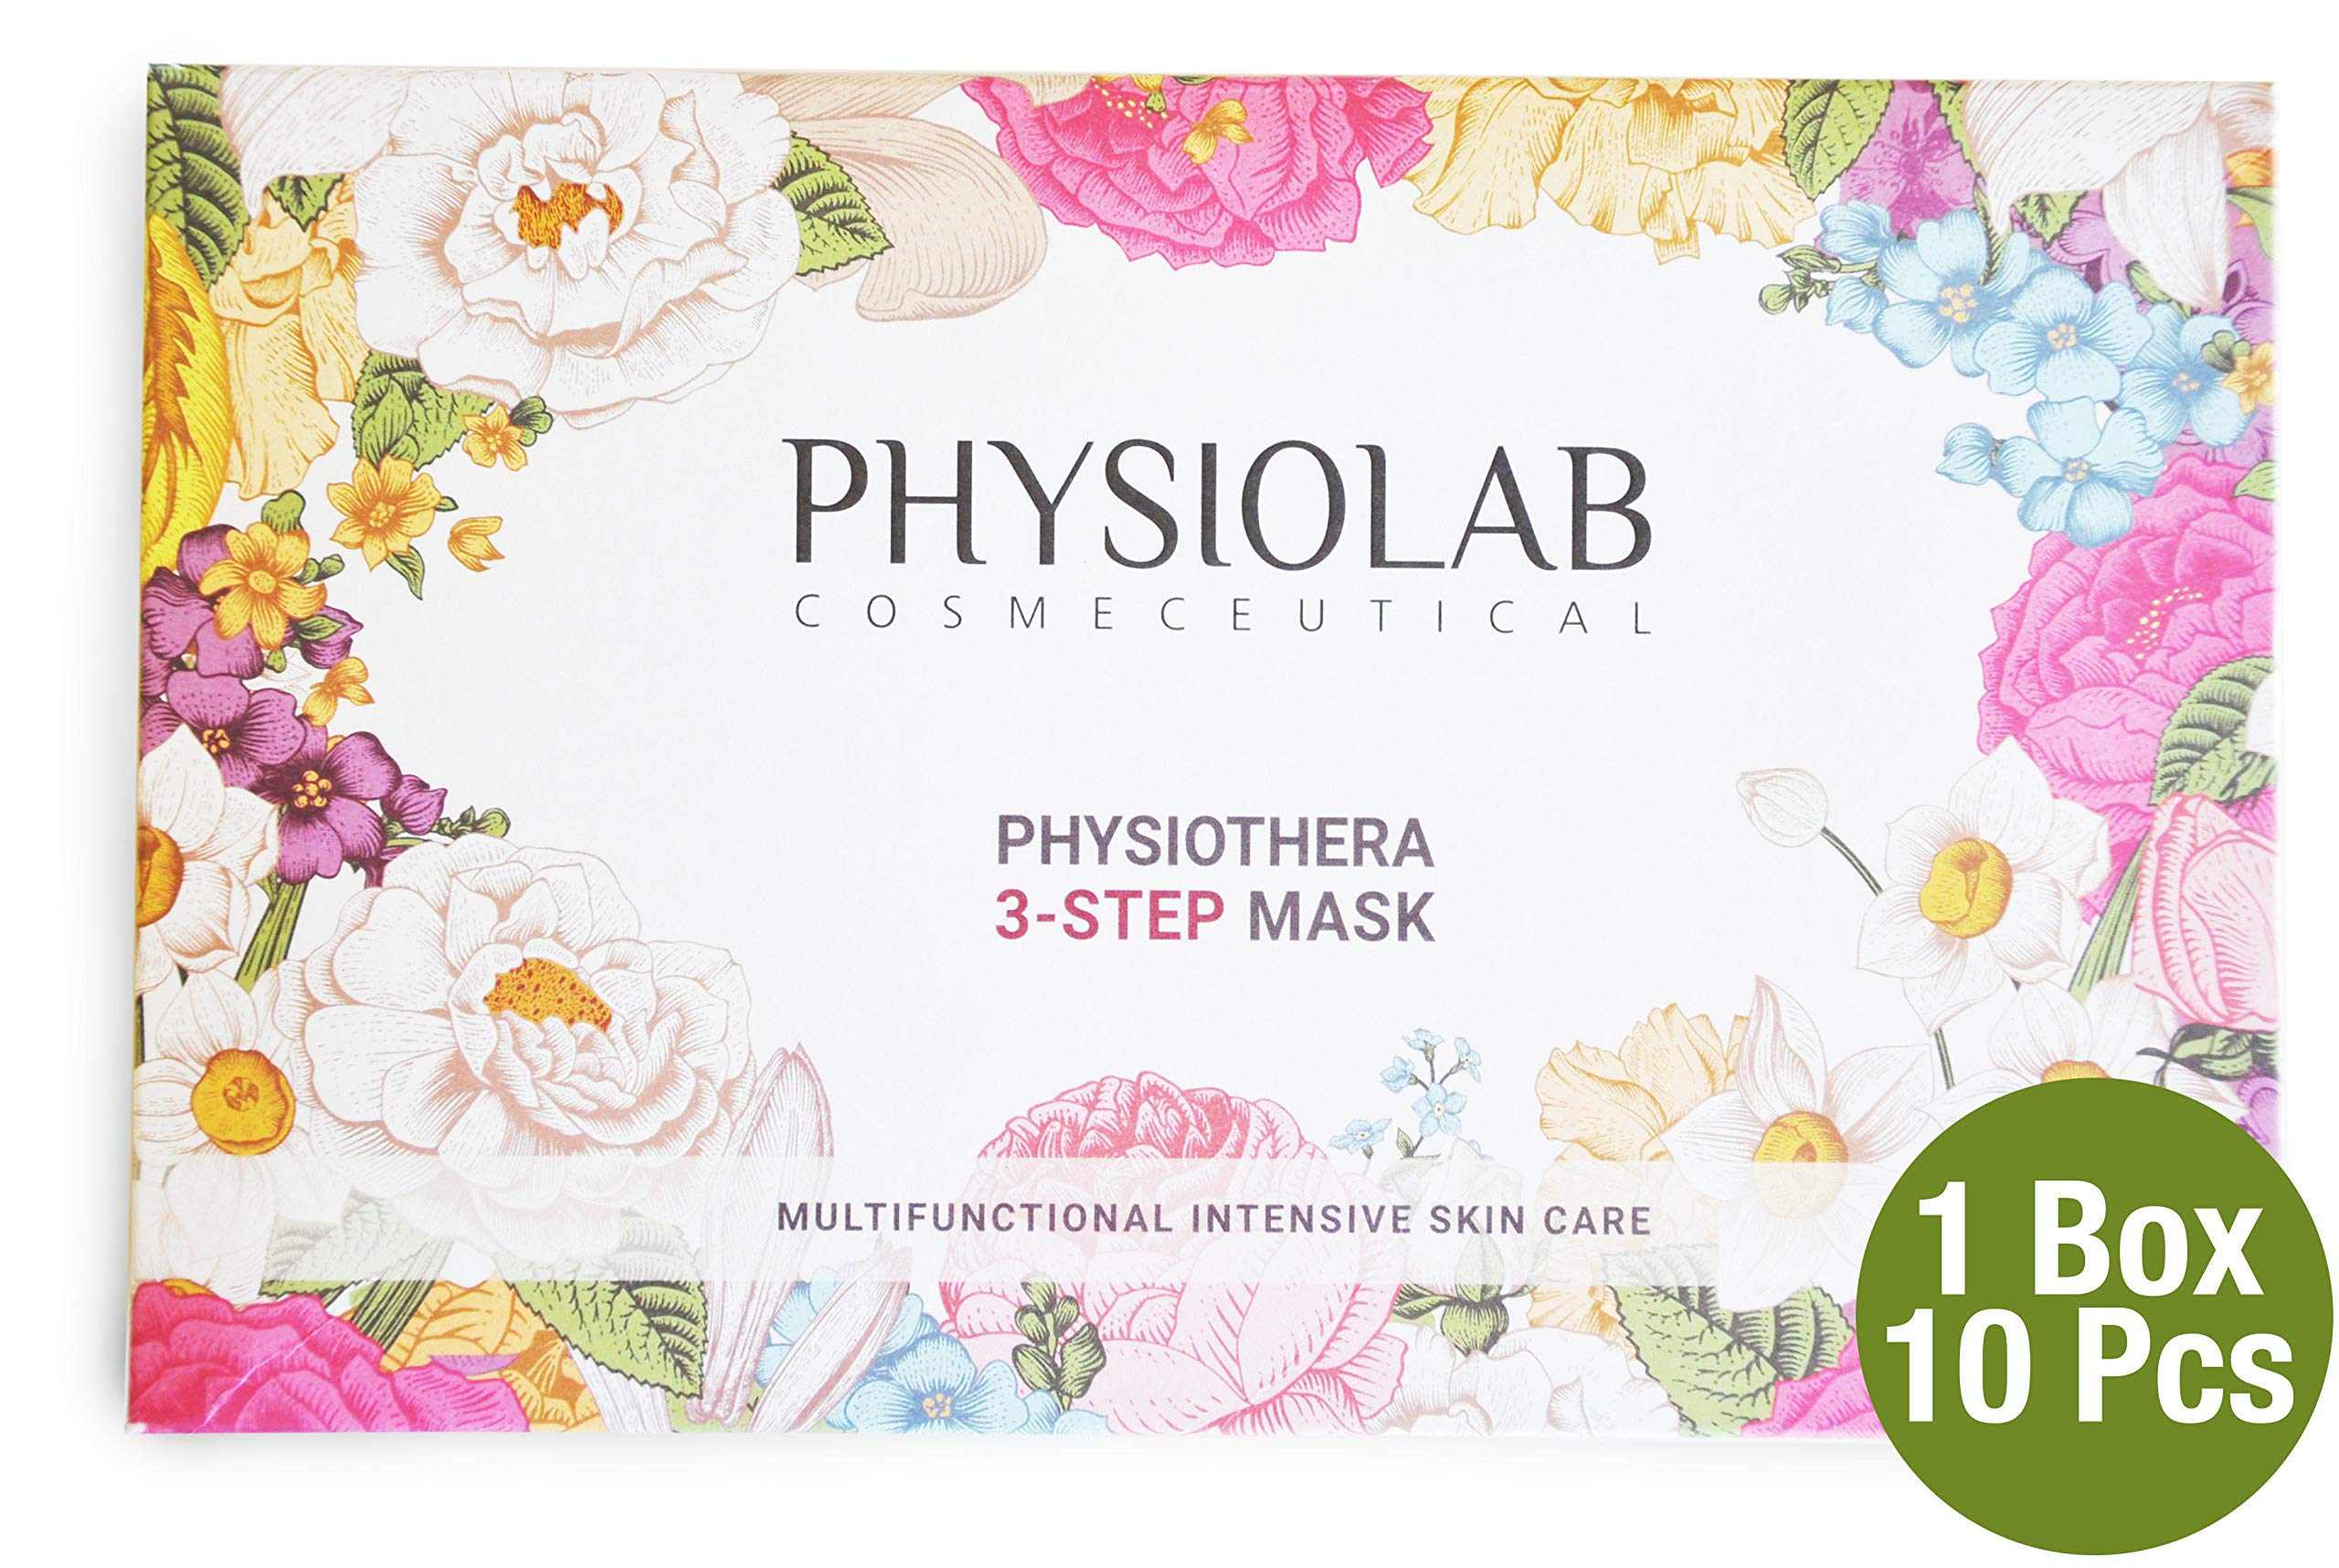 Physiothera 3 Step Mask 10pc Multi-functional Intensive Skin Care - Made in Korea